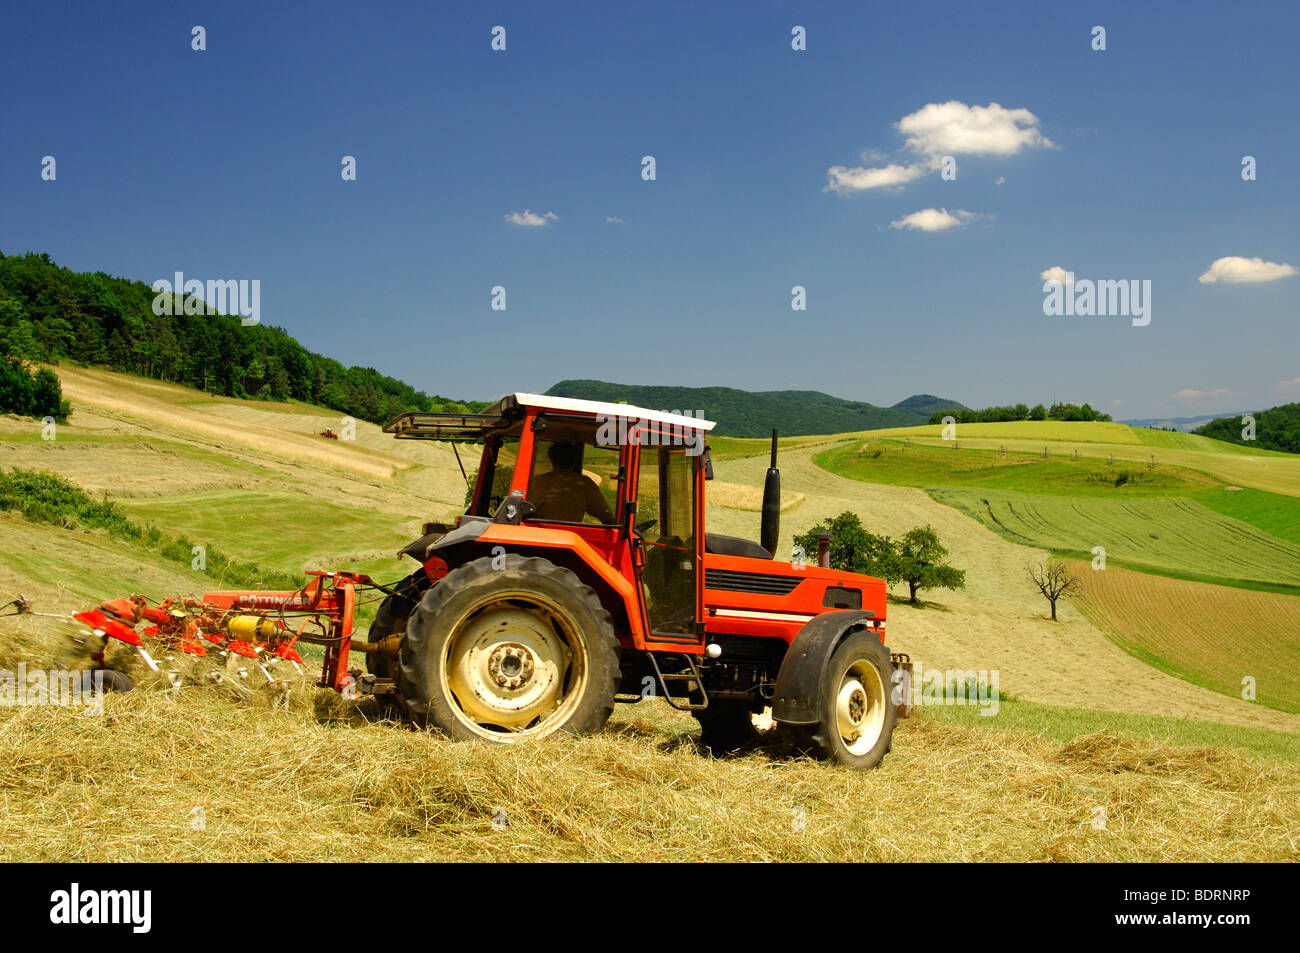 Tractor making hay on meadows in the Swiss Central Plateau, canton of Aargau, Switzerland - Stock Image